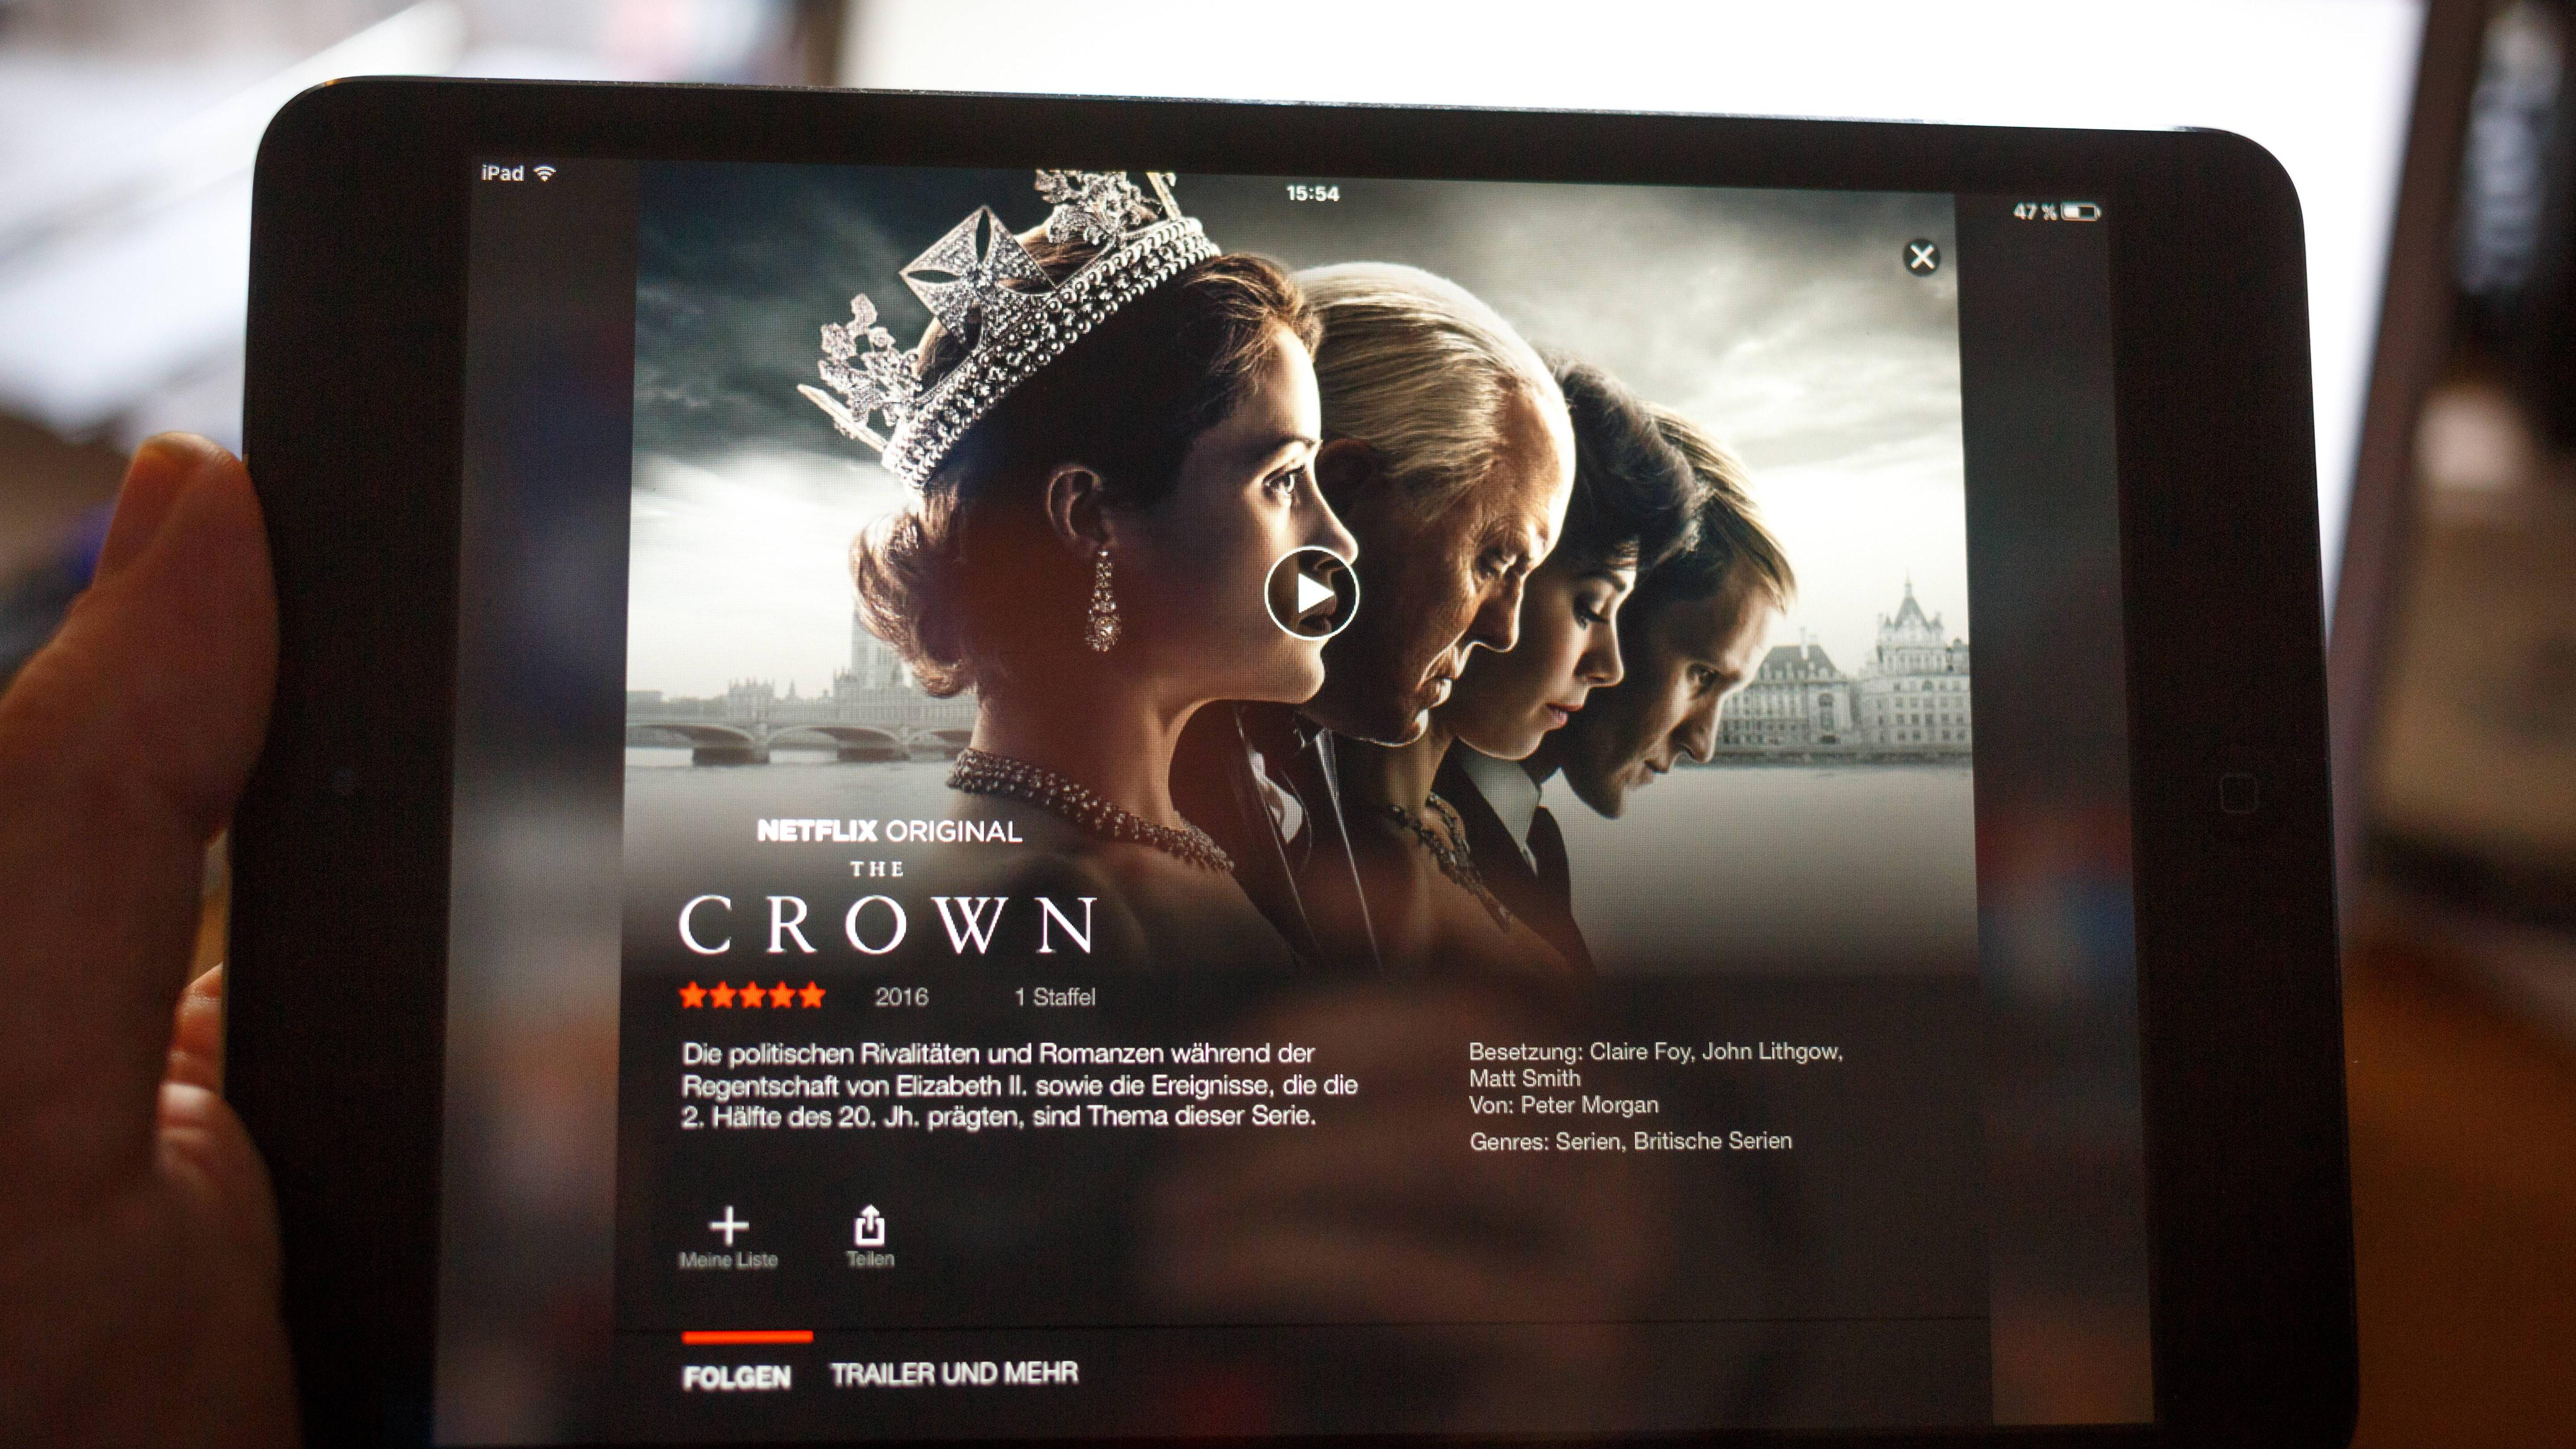 The Crown auf dem iPad